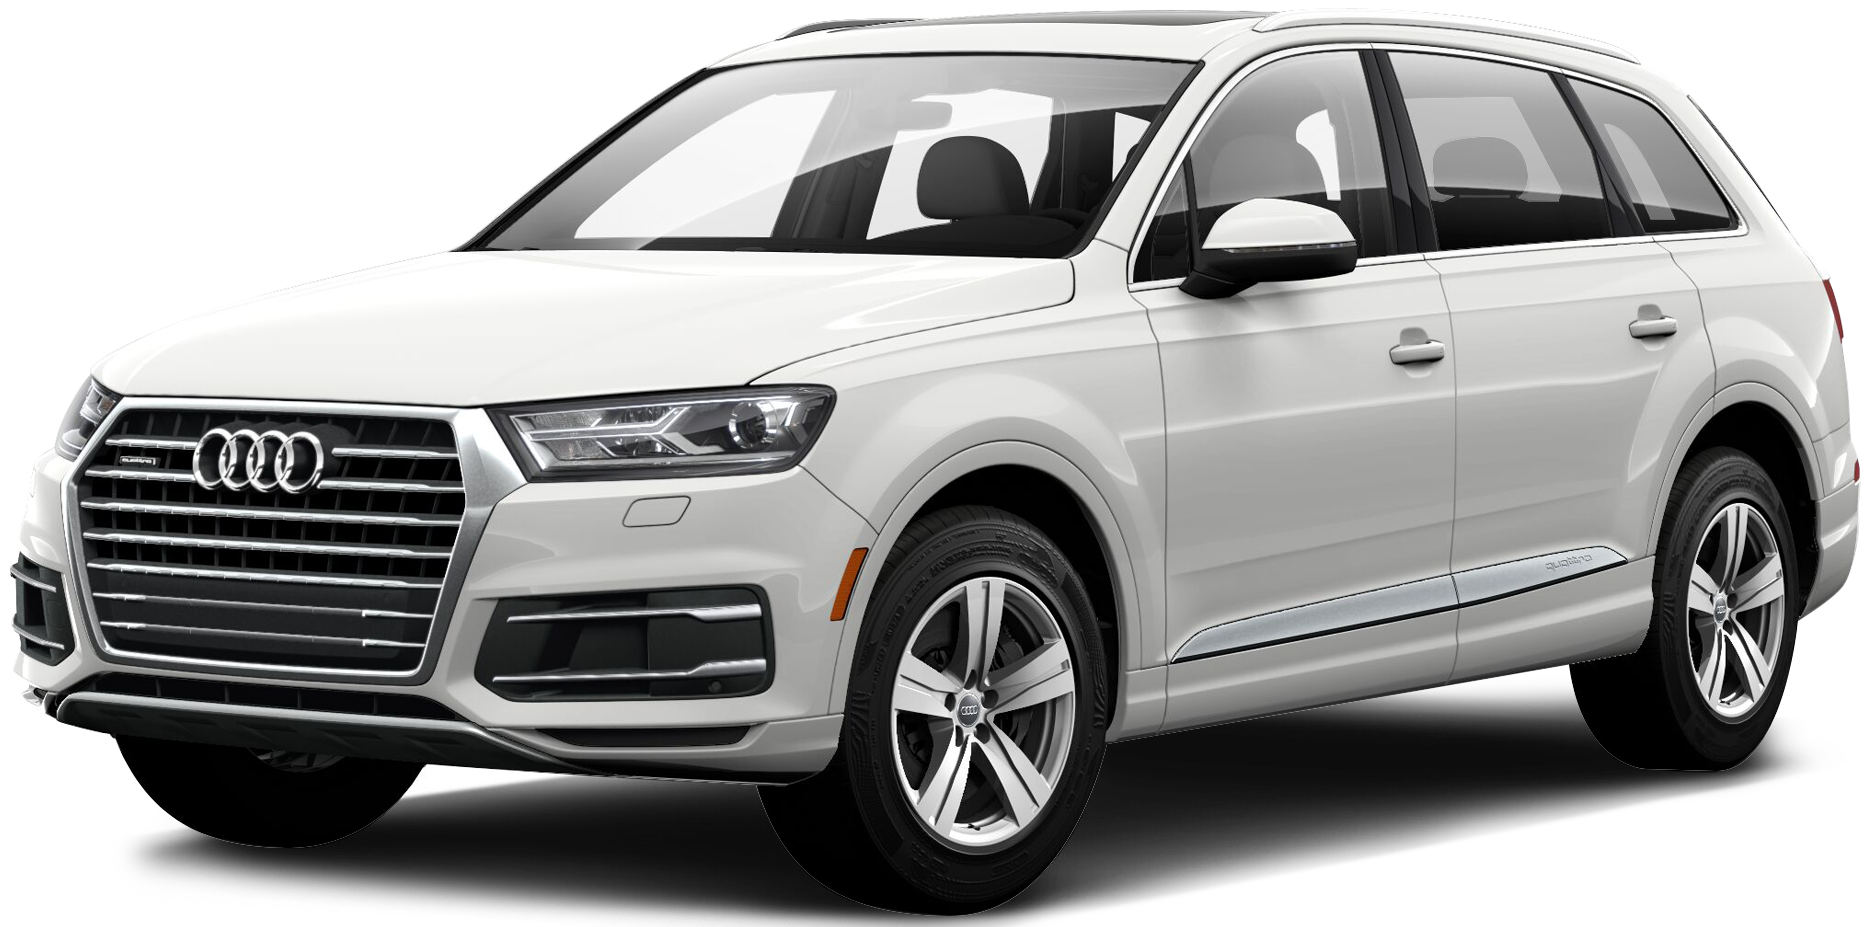 http://images.dealer.com/ddc/vehicles/2019/Audi/Q7/SUV/trim_20T_Premium_ff488a/perspective/front-left/0019_24.png